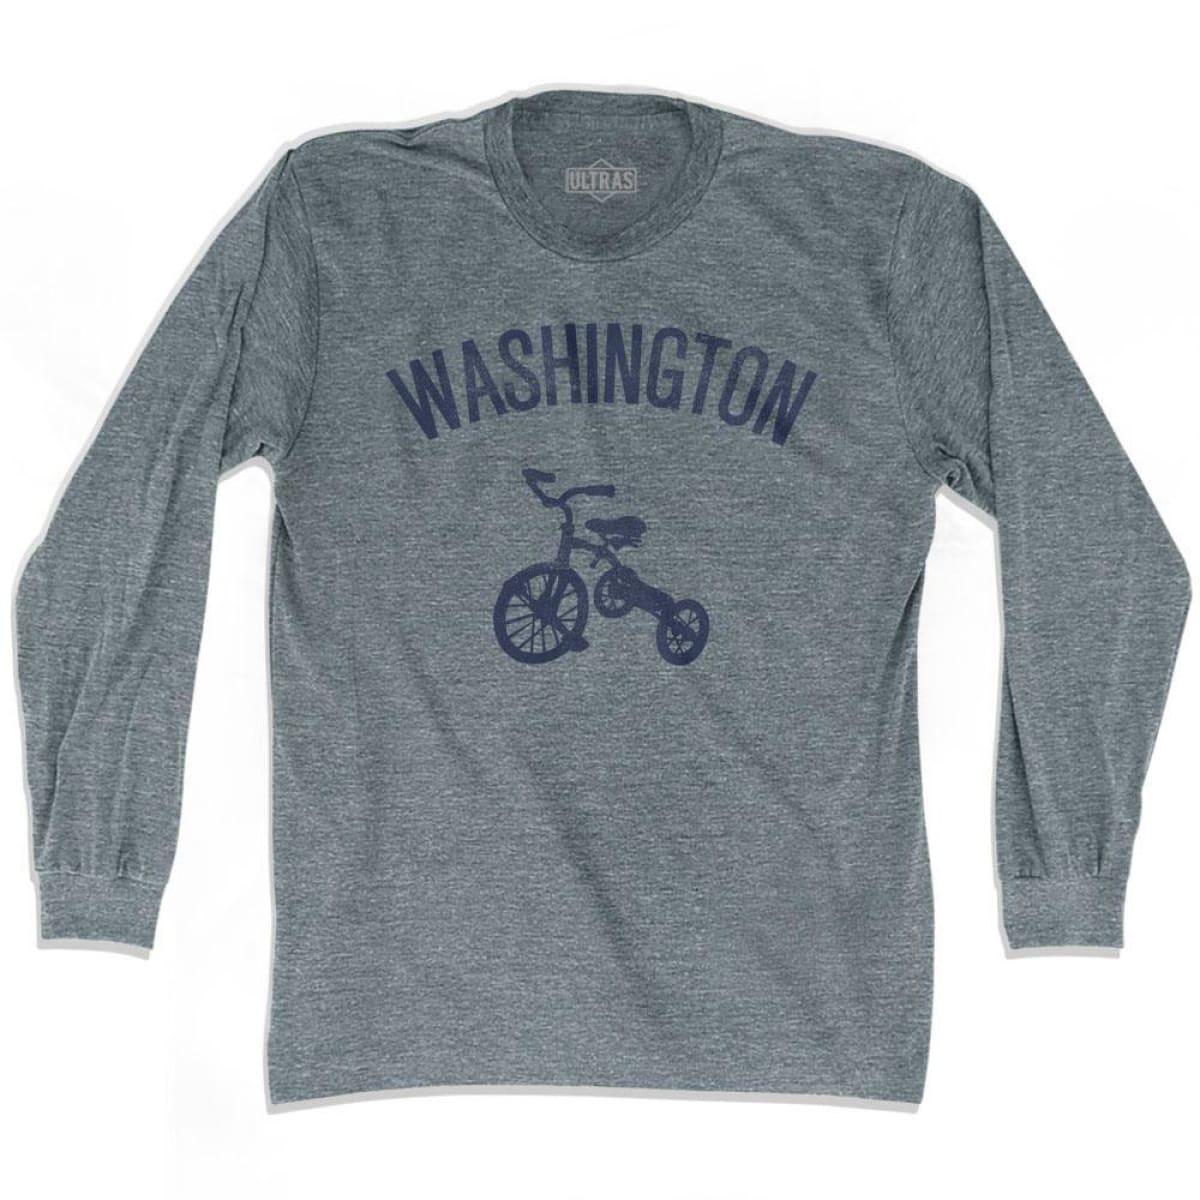 Washington State Tricycle Adult Tri-Blend Long Sleeve T-shirt - Athletic Grey / Adult Small - Tricycle State